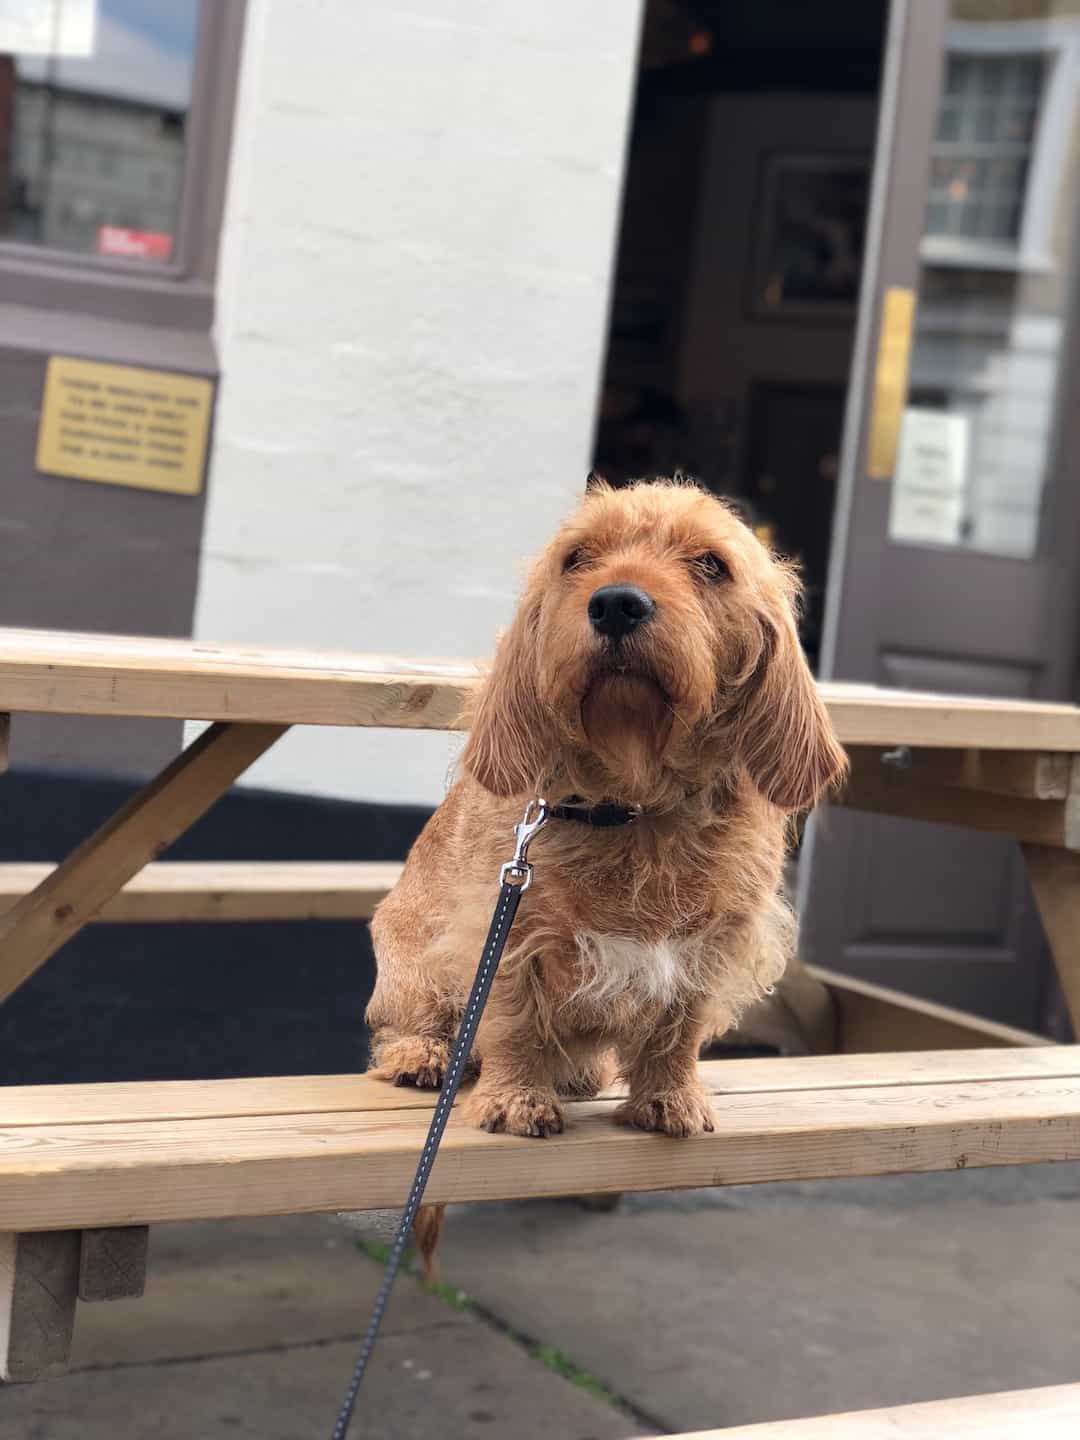 My Dog Friendly London By Amber The Basset Fauve De Bretagne - Albert Arms 2